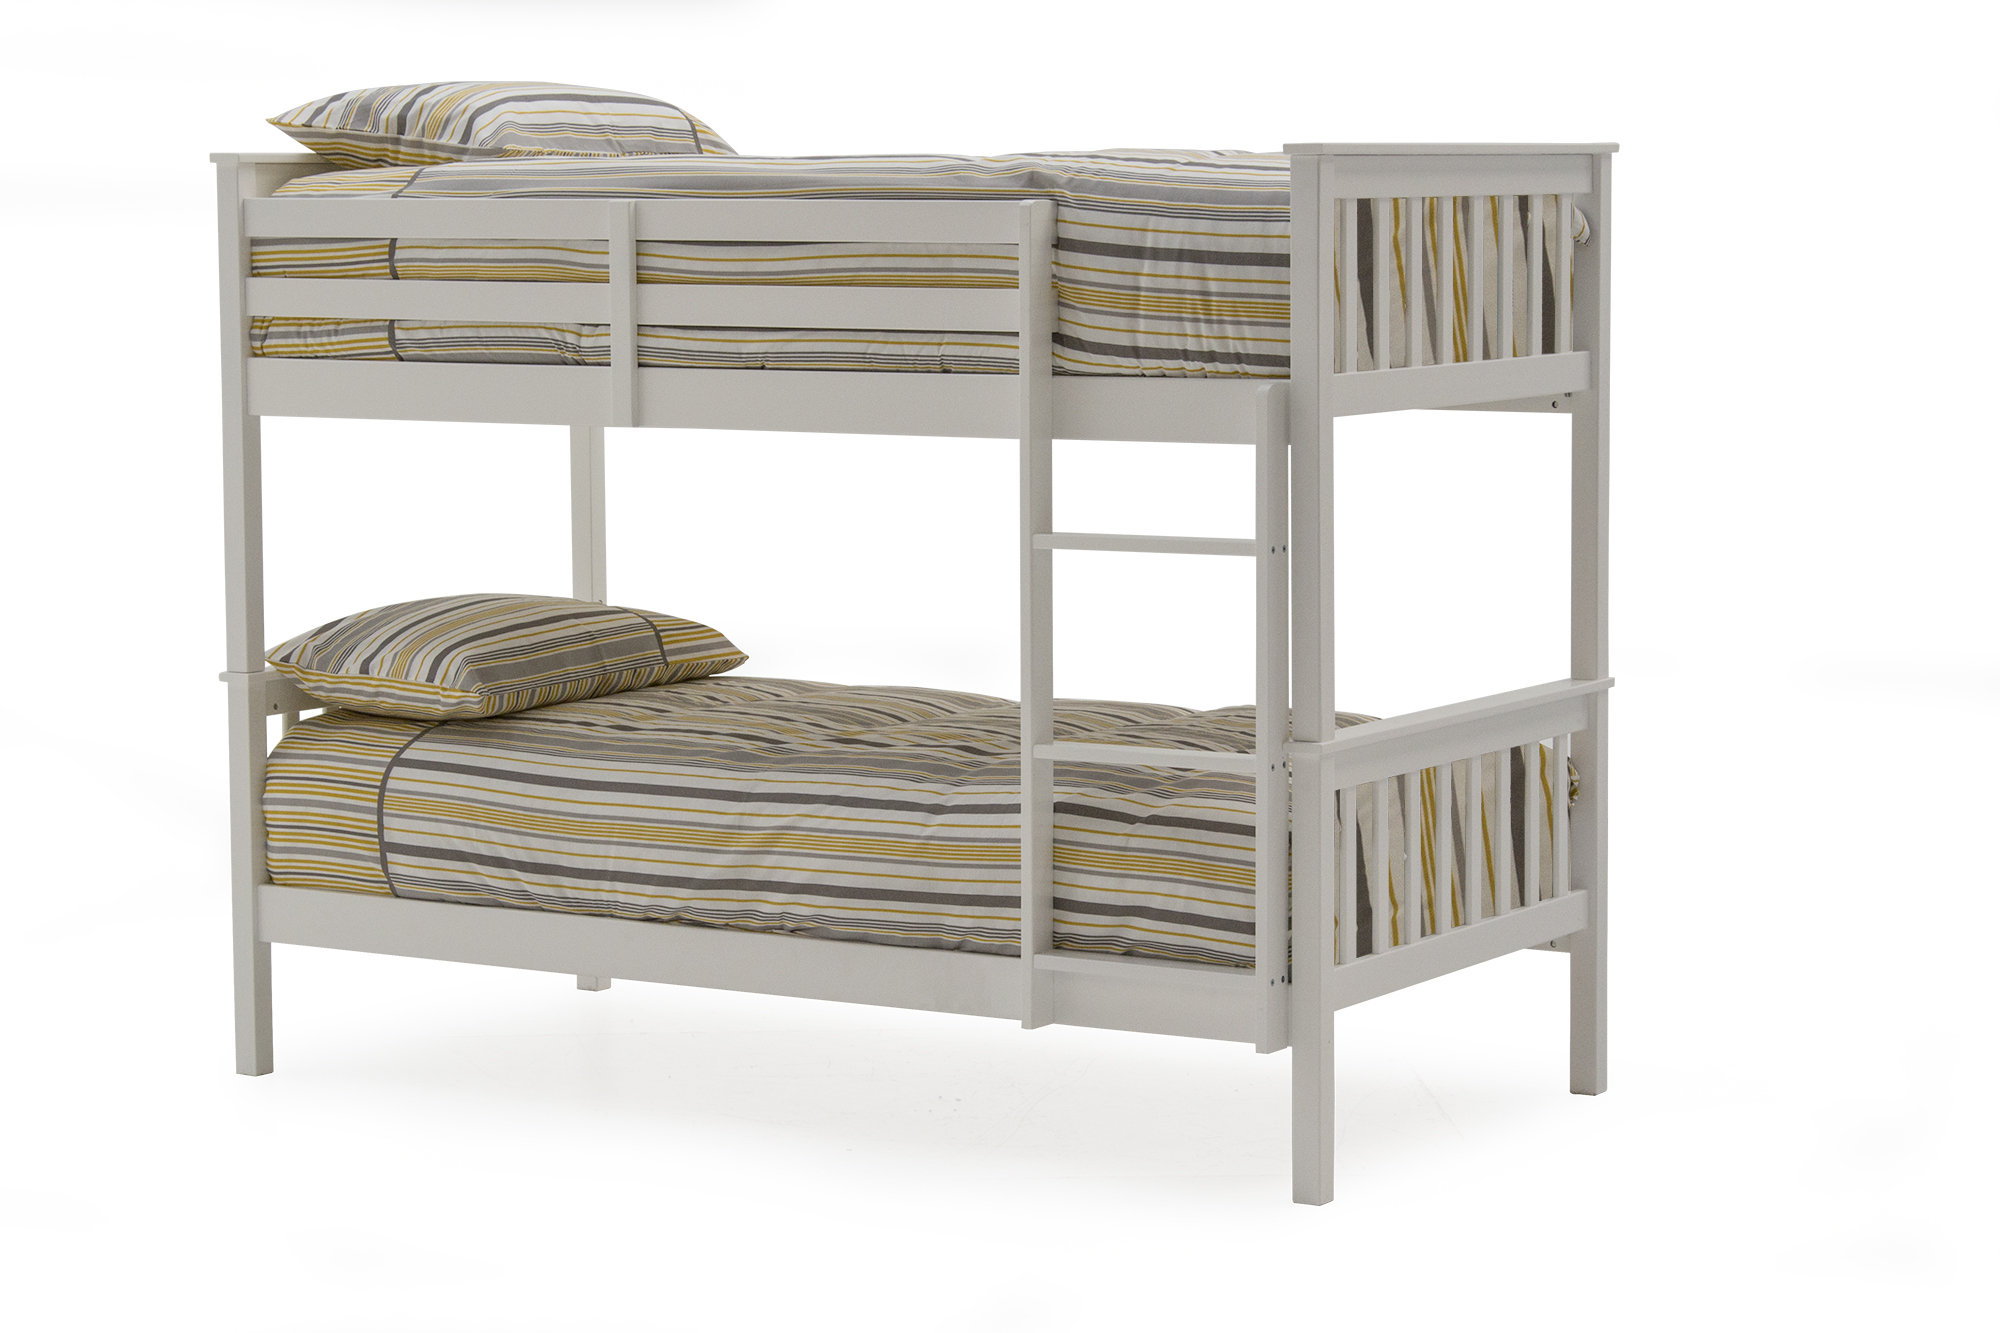 Salix Blue 3ft And 4ft6 Wooden Bunk Bed